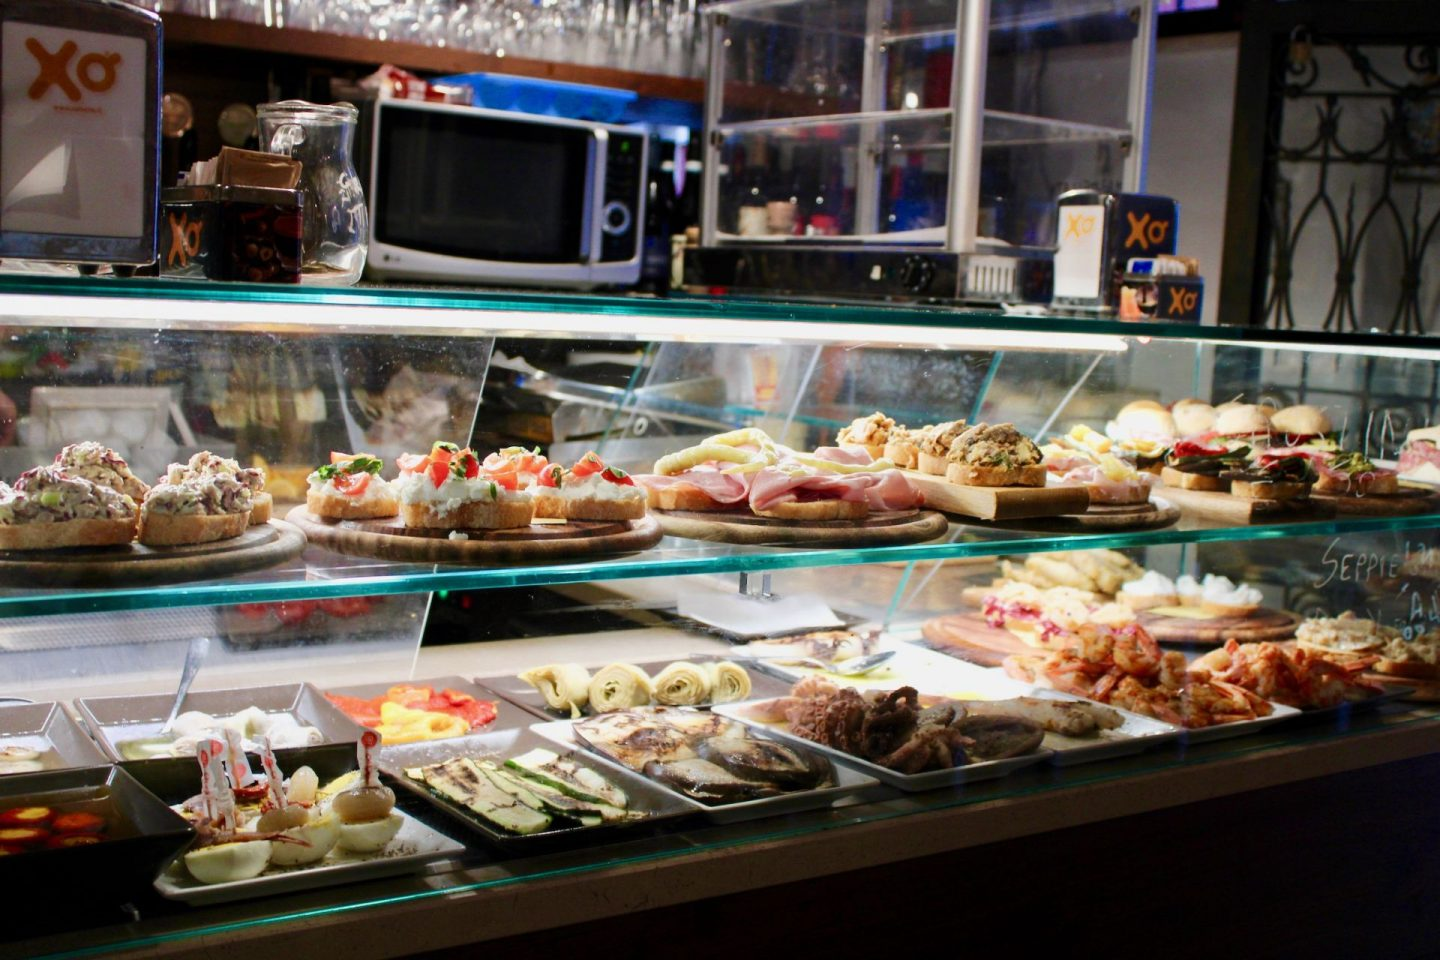 a cicchetti bar in venice, showing a selection of small snacks